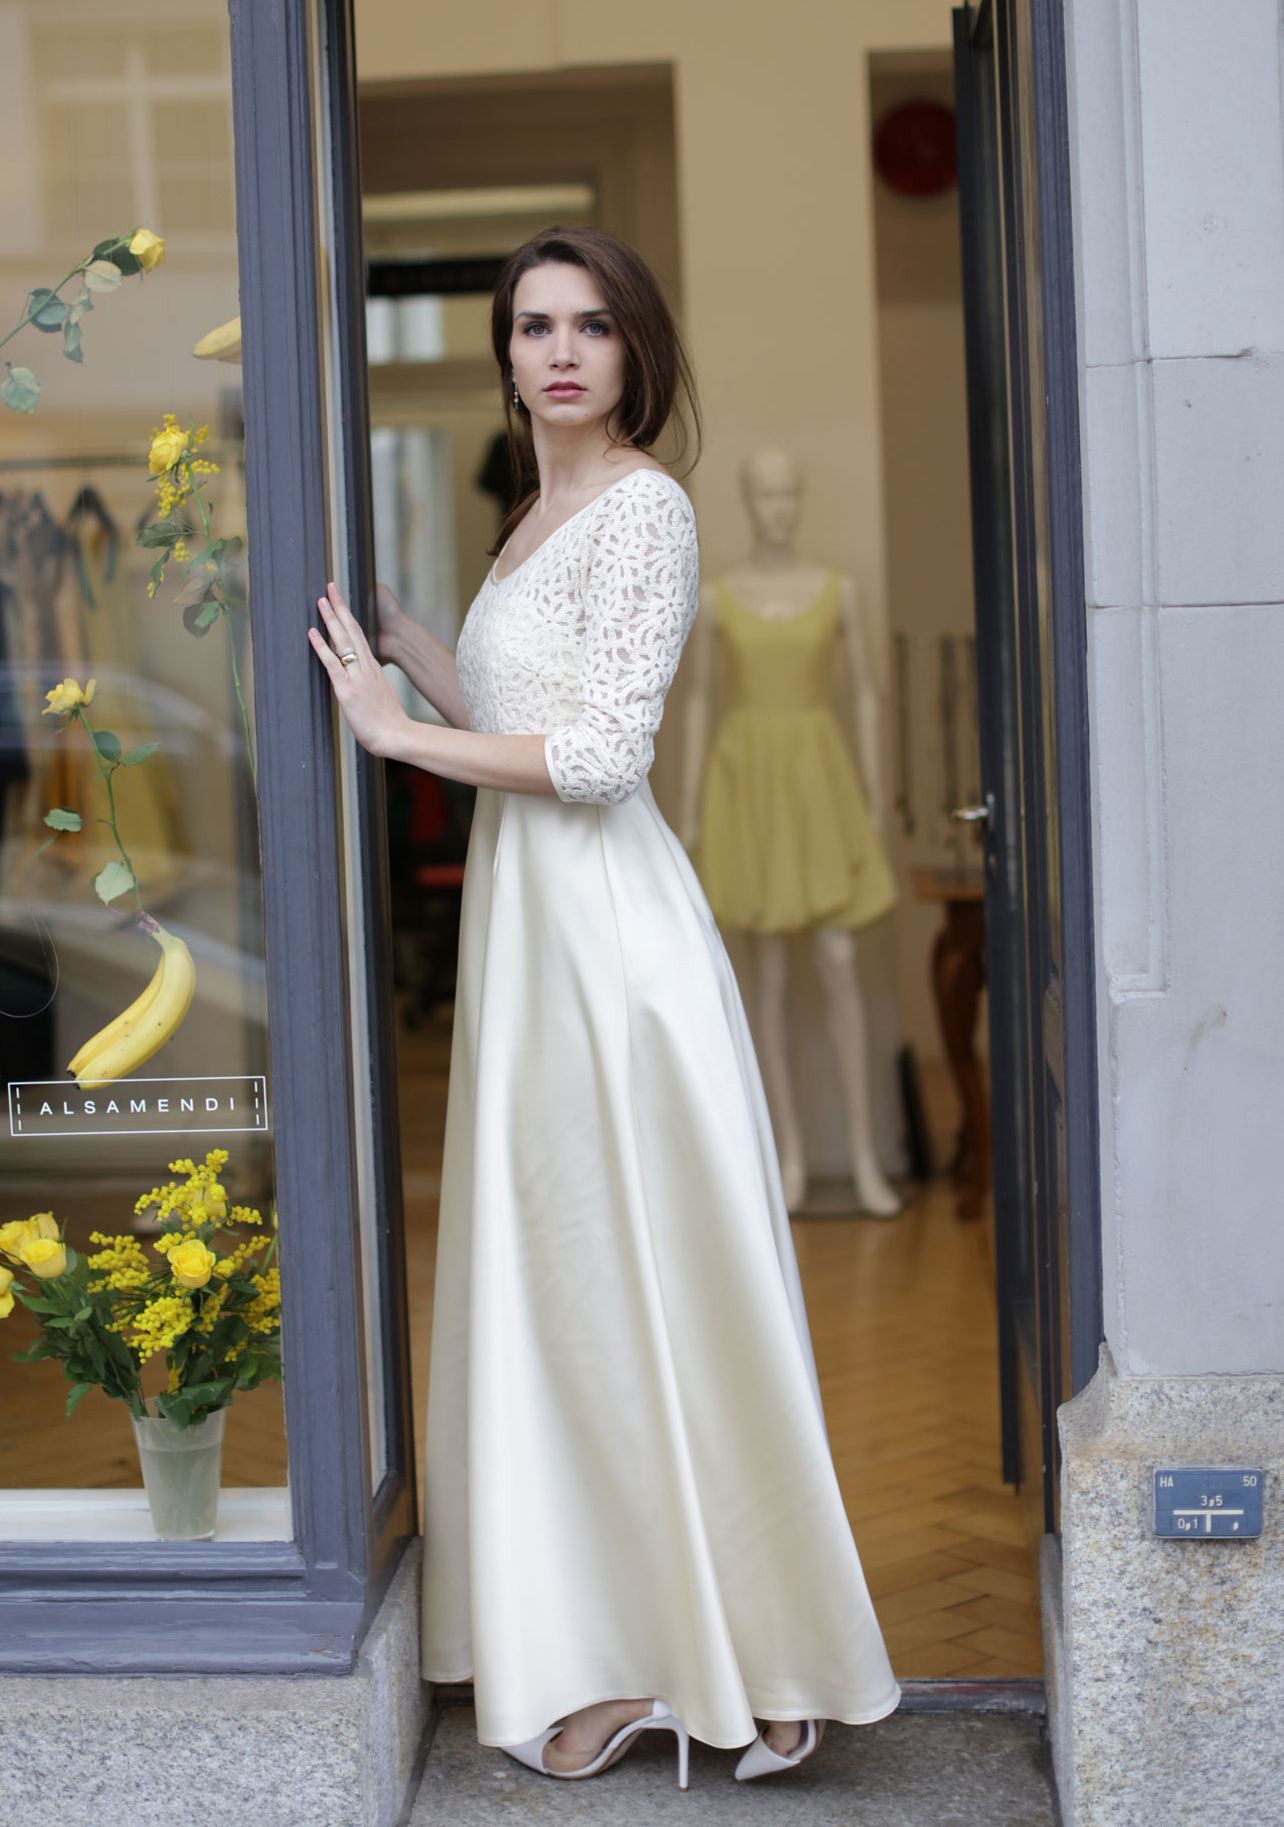 LOOK C.1.1 Wedding Dress - Evening Dress - Fashion Designer - Atelier Zürich - Tailor made Dresses